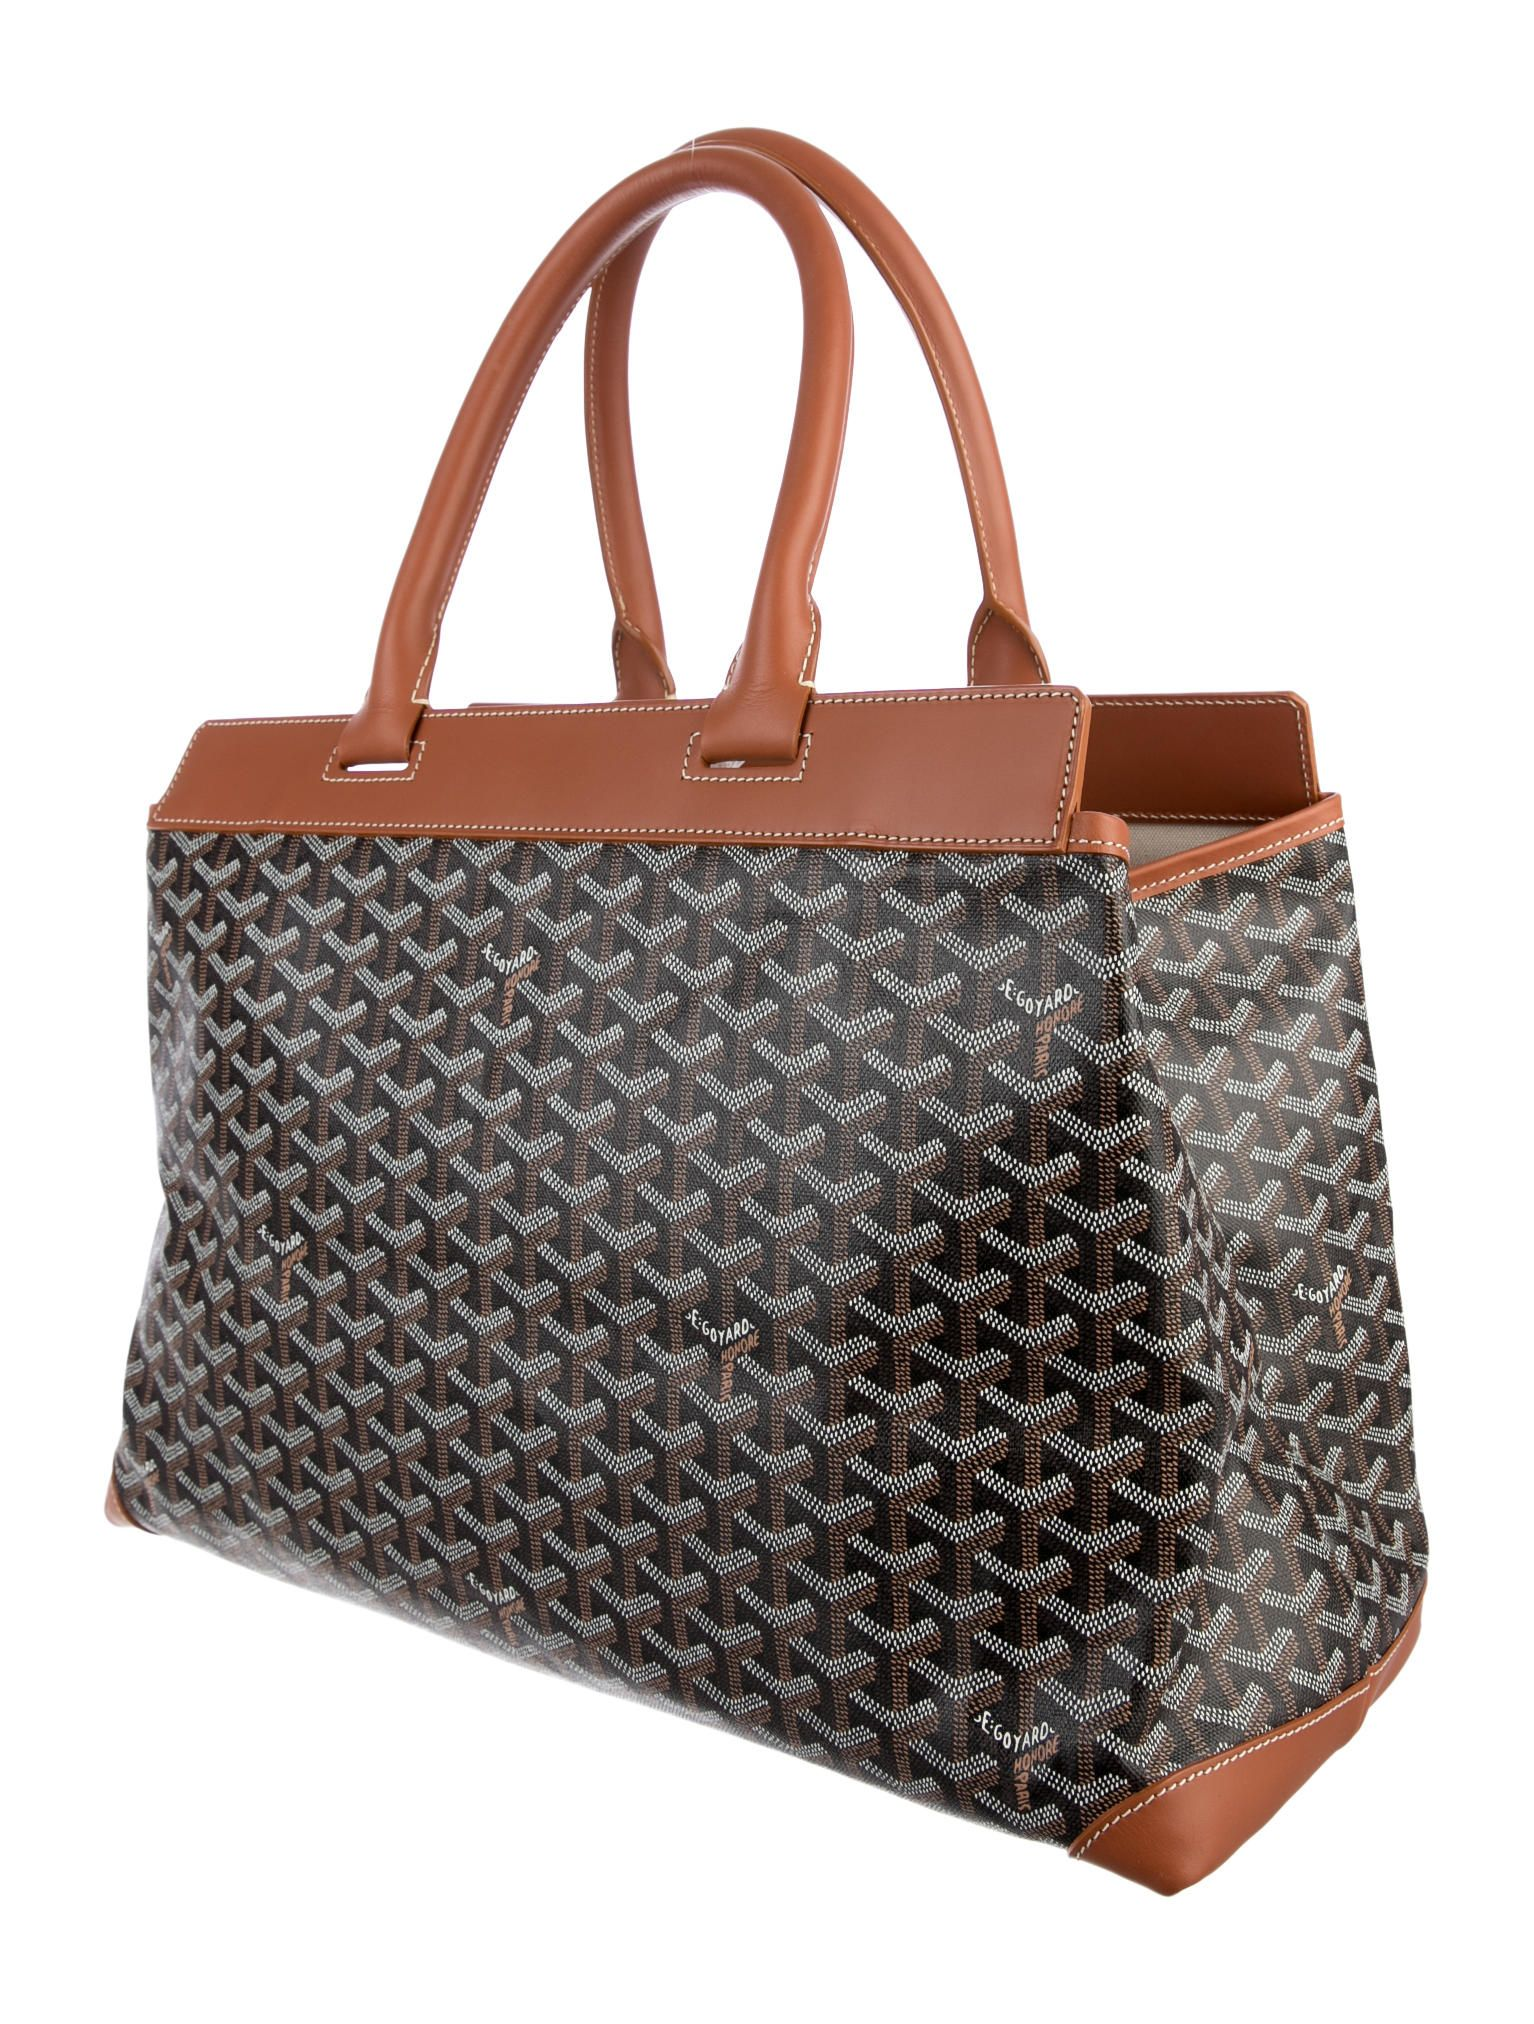 c09a31c1fb0 The Best Man Totes of 2016! Goyard Bellechasse GM Tote in Grey